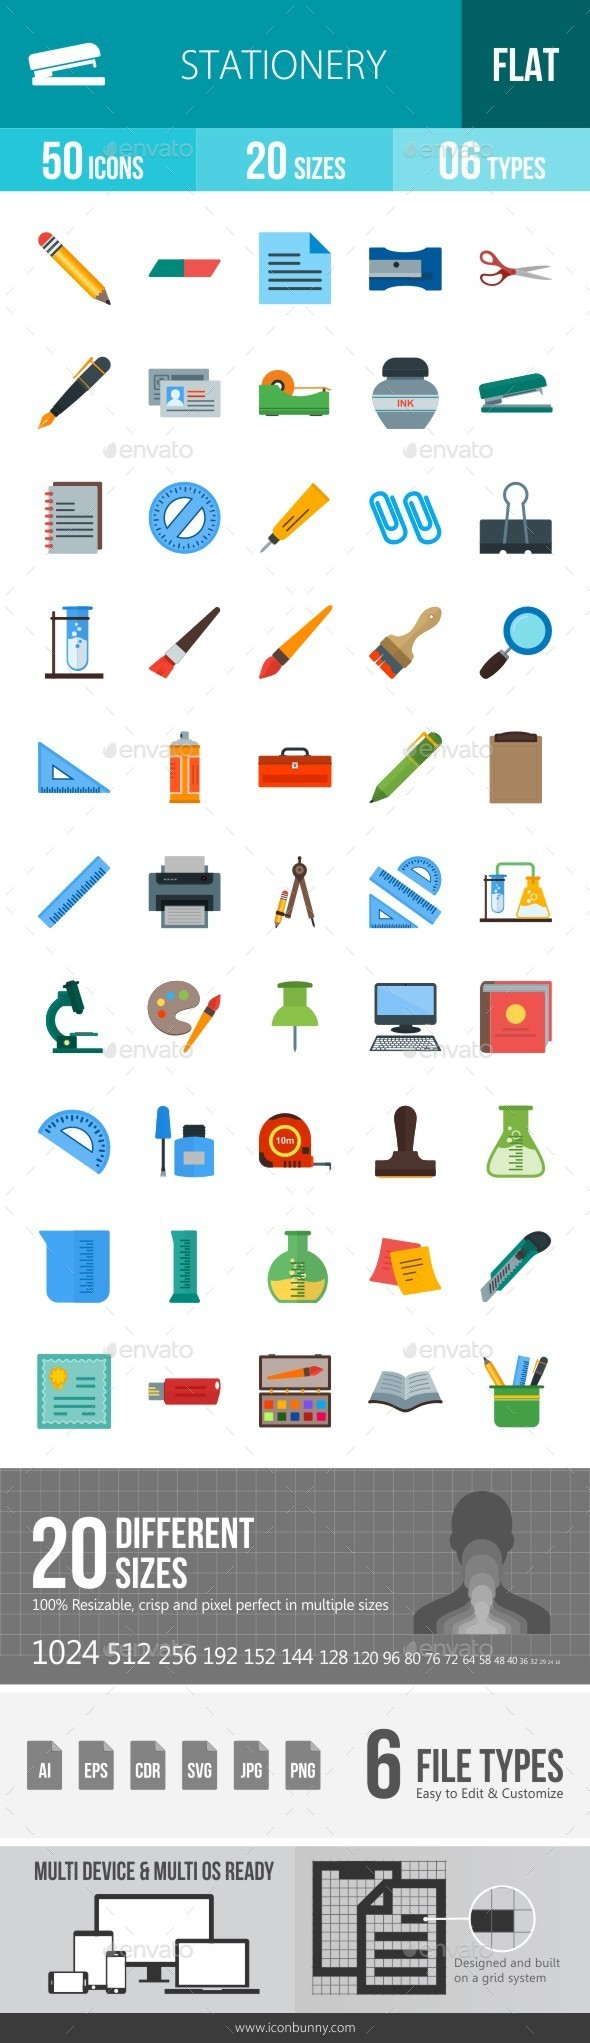 Stationery Flat Multicolor Icons - Icons